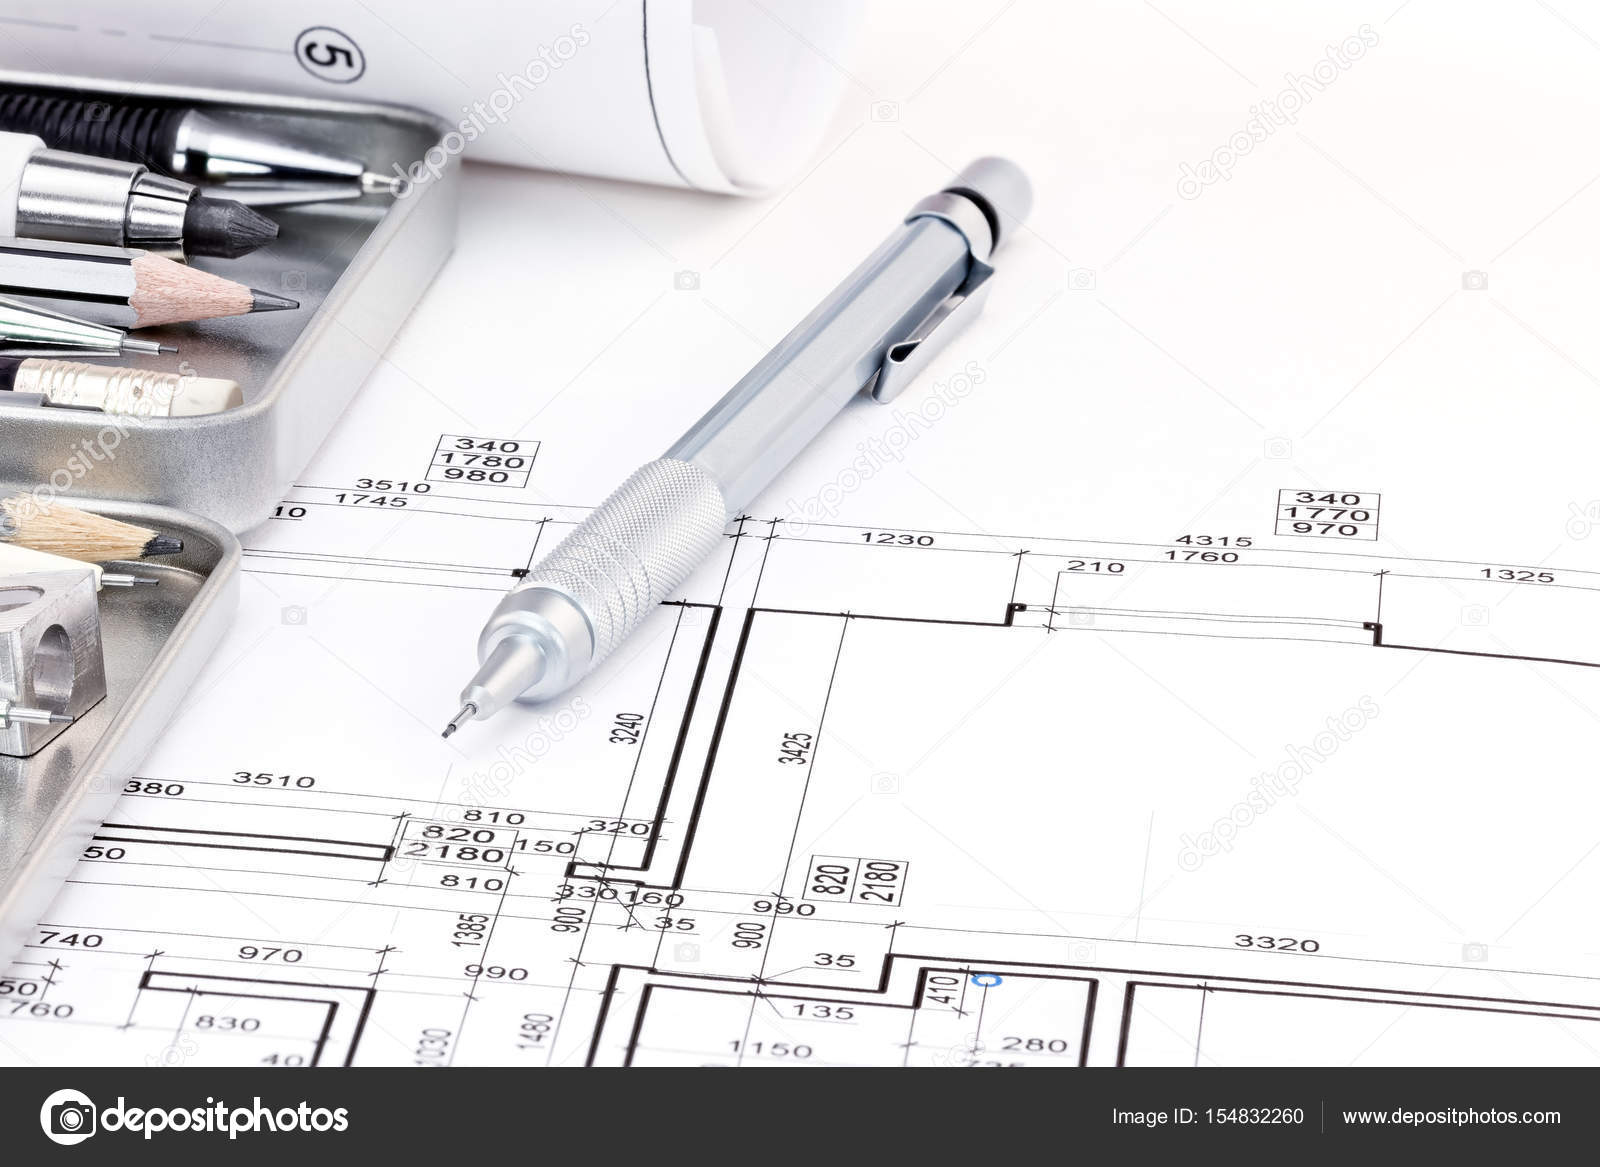 Architects Drawing Tools And Architectural Plan Of Apartment Stock Photo